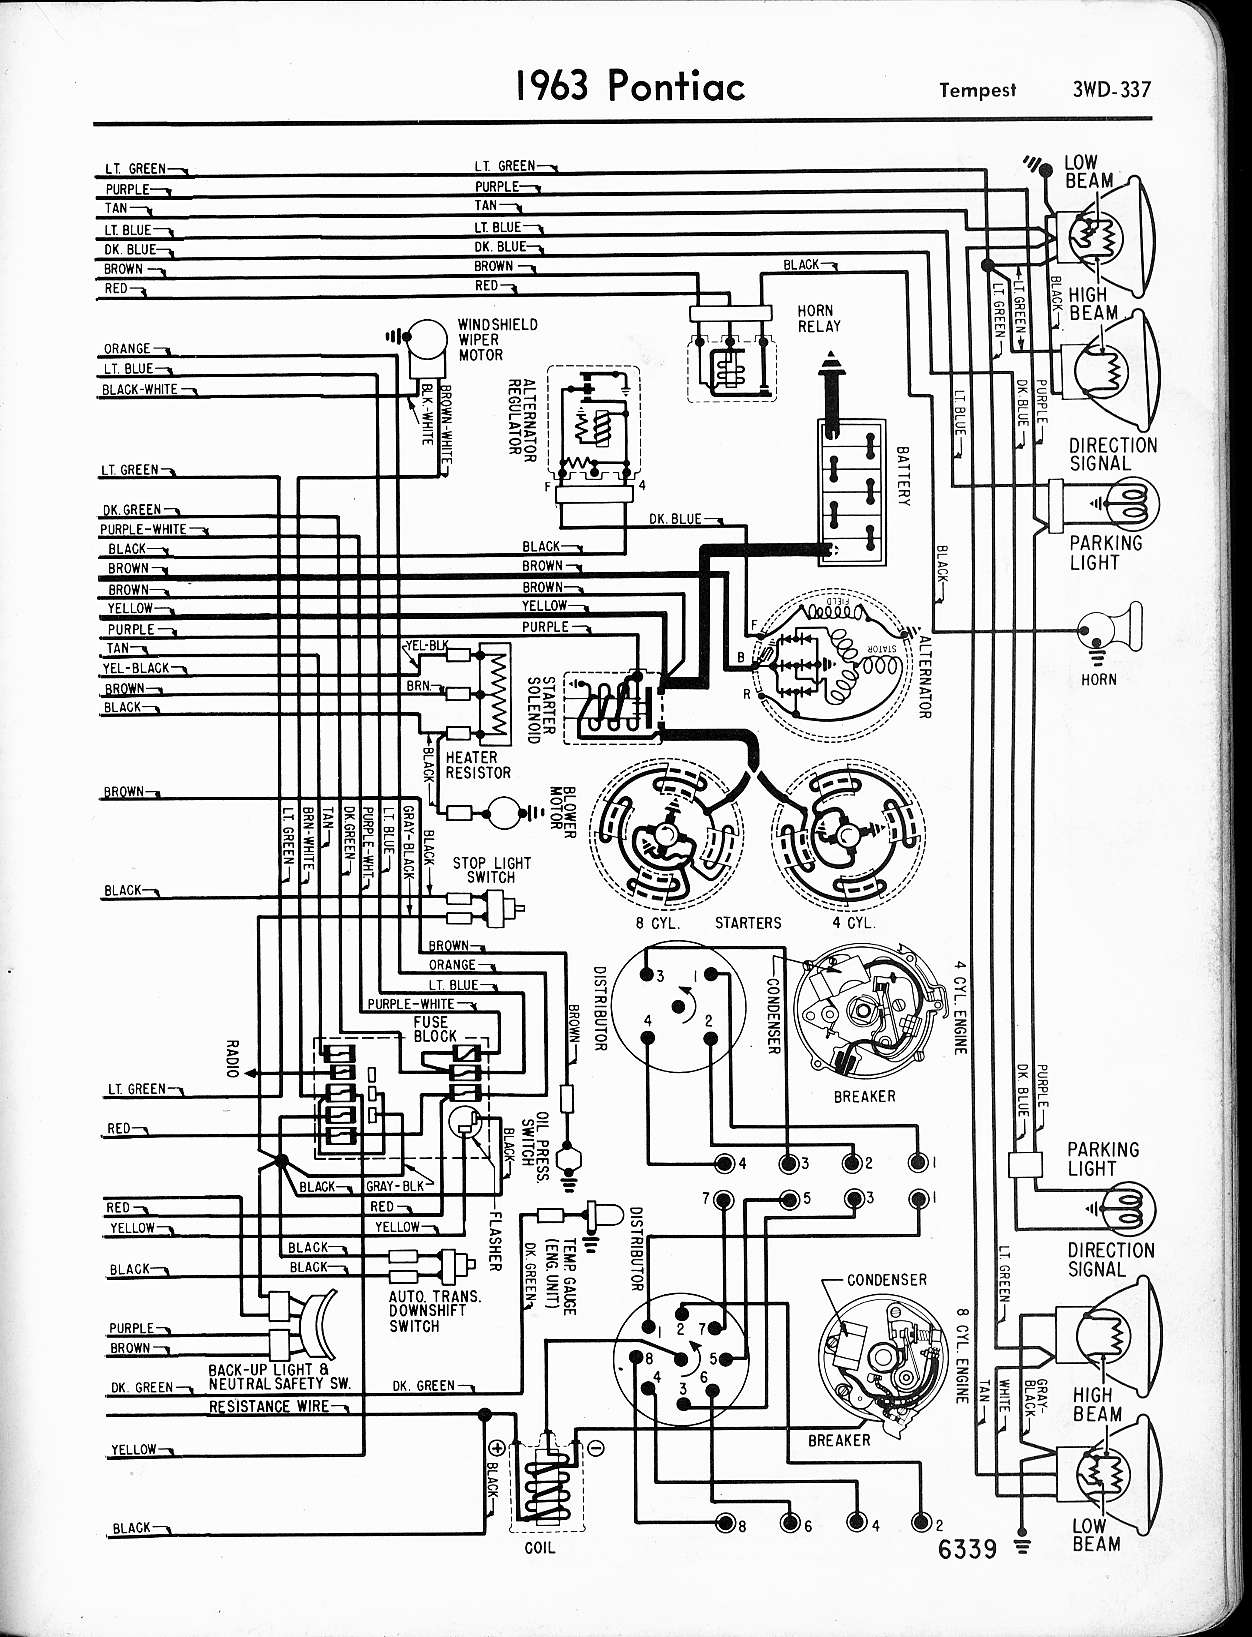 66 gto engine wiring diagram | better wiring diagram online 67 gto wiring diagram 66 gto wiring diagram #9